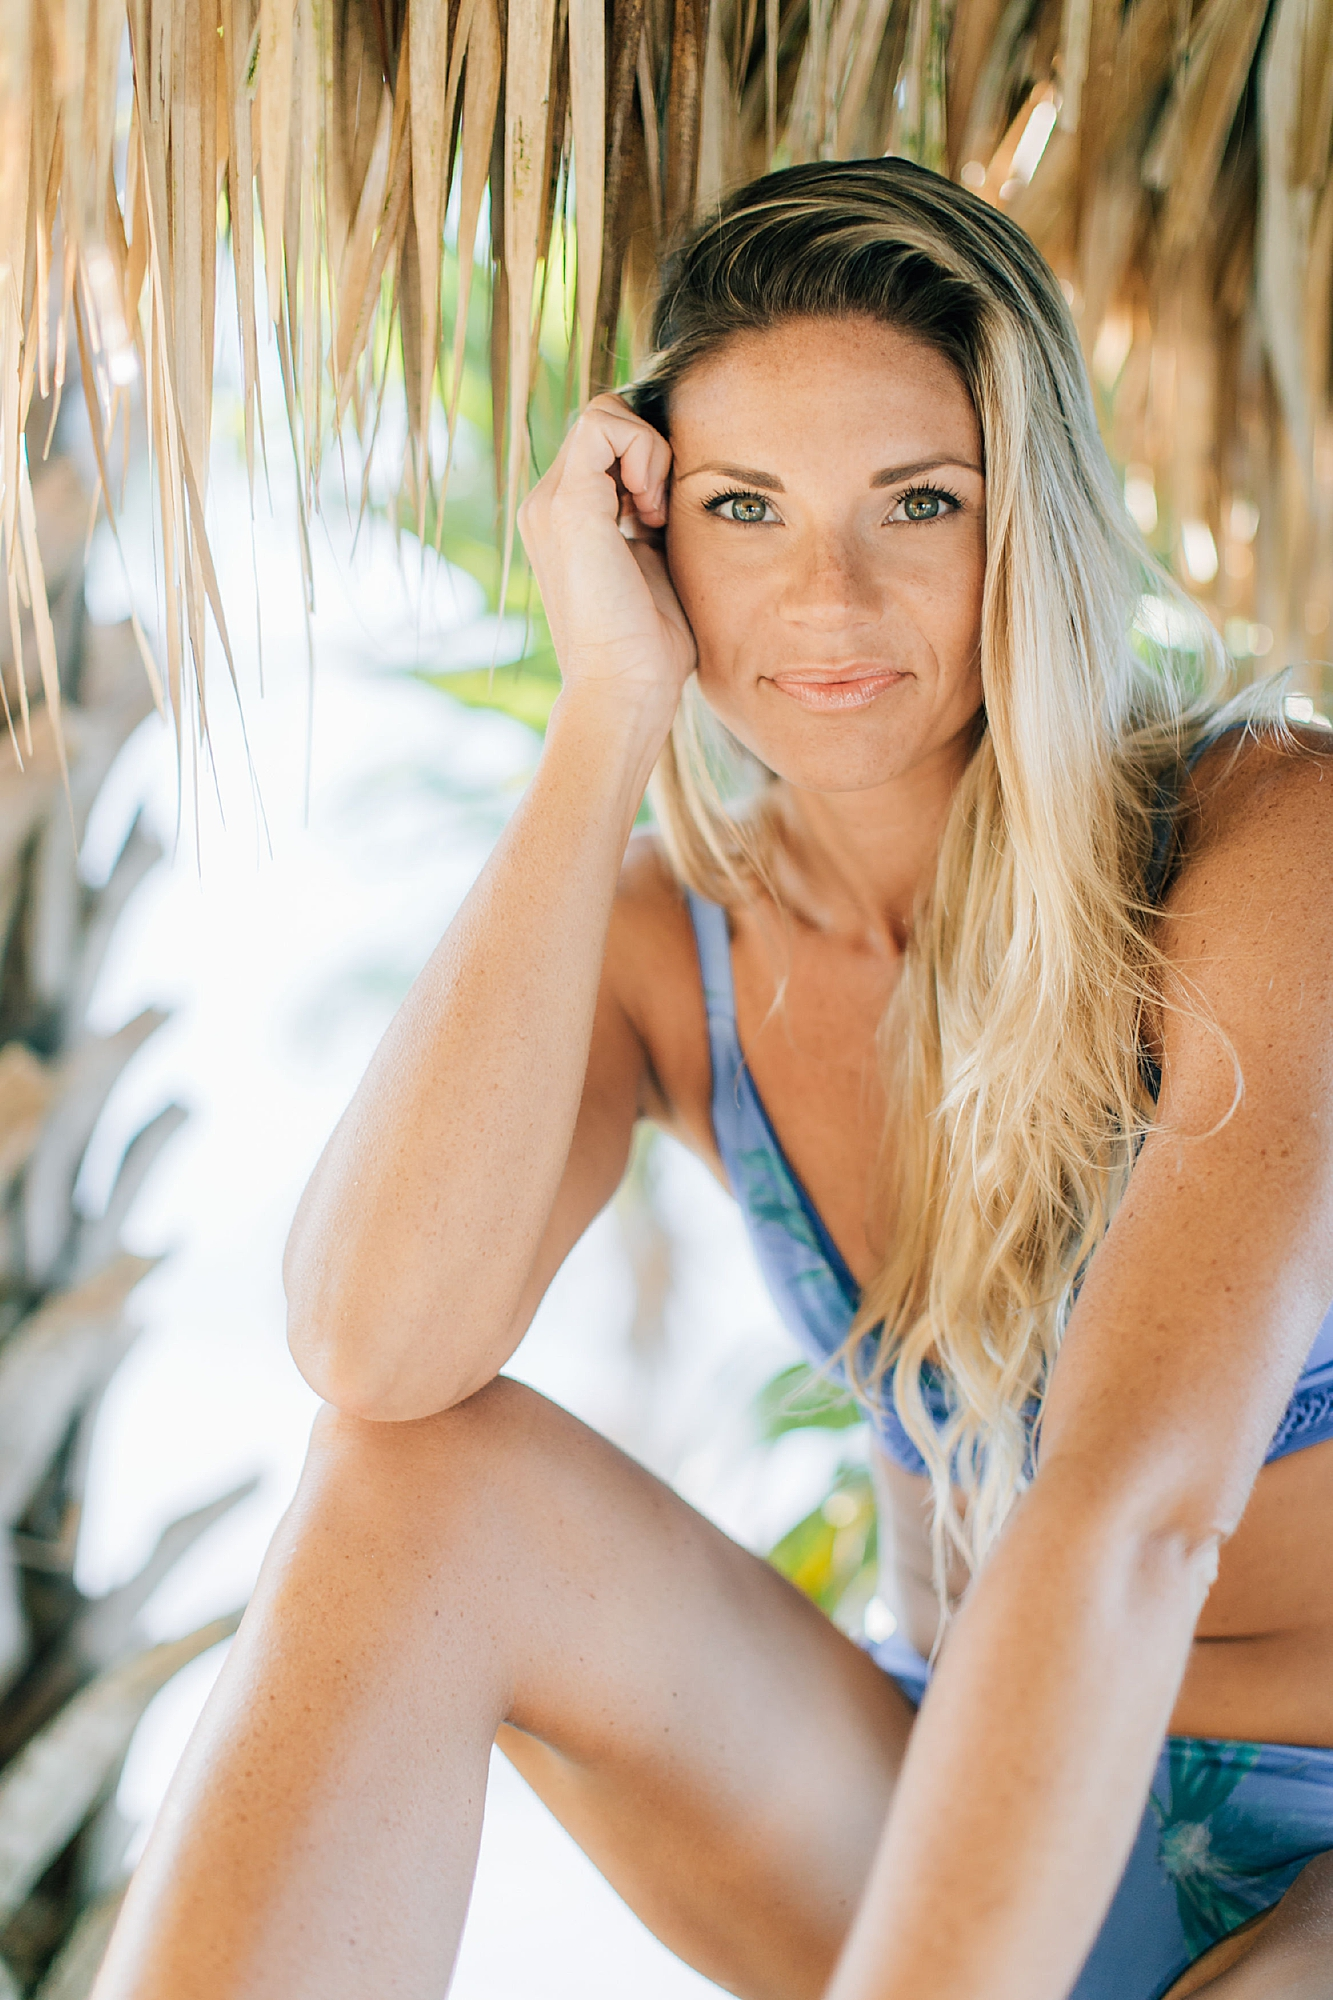 Vibrant and Bright Swimwear Photography by Magdalena Studios for Coveline Swimwear 0031